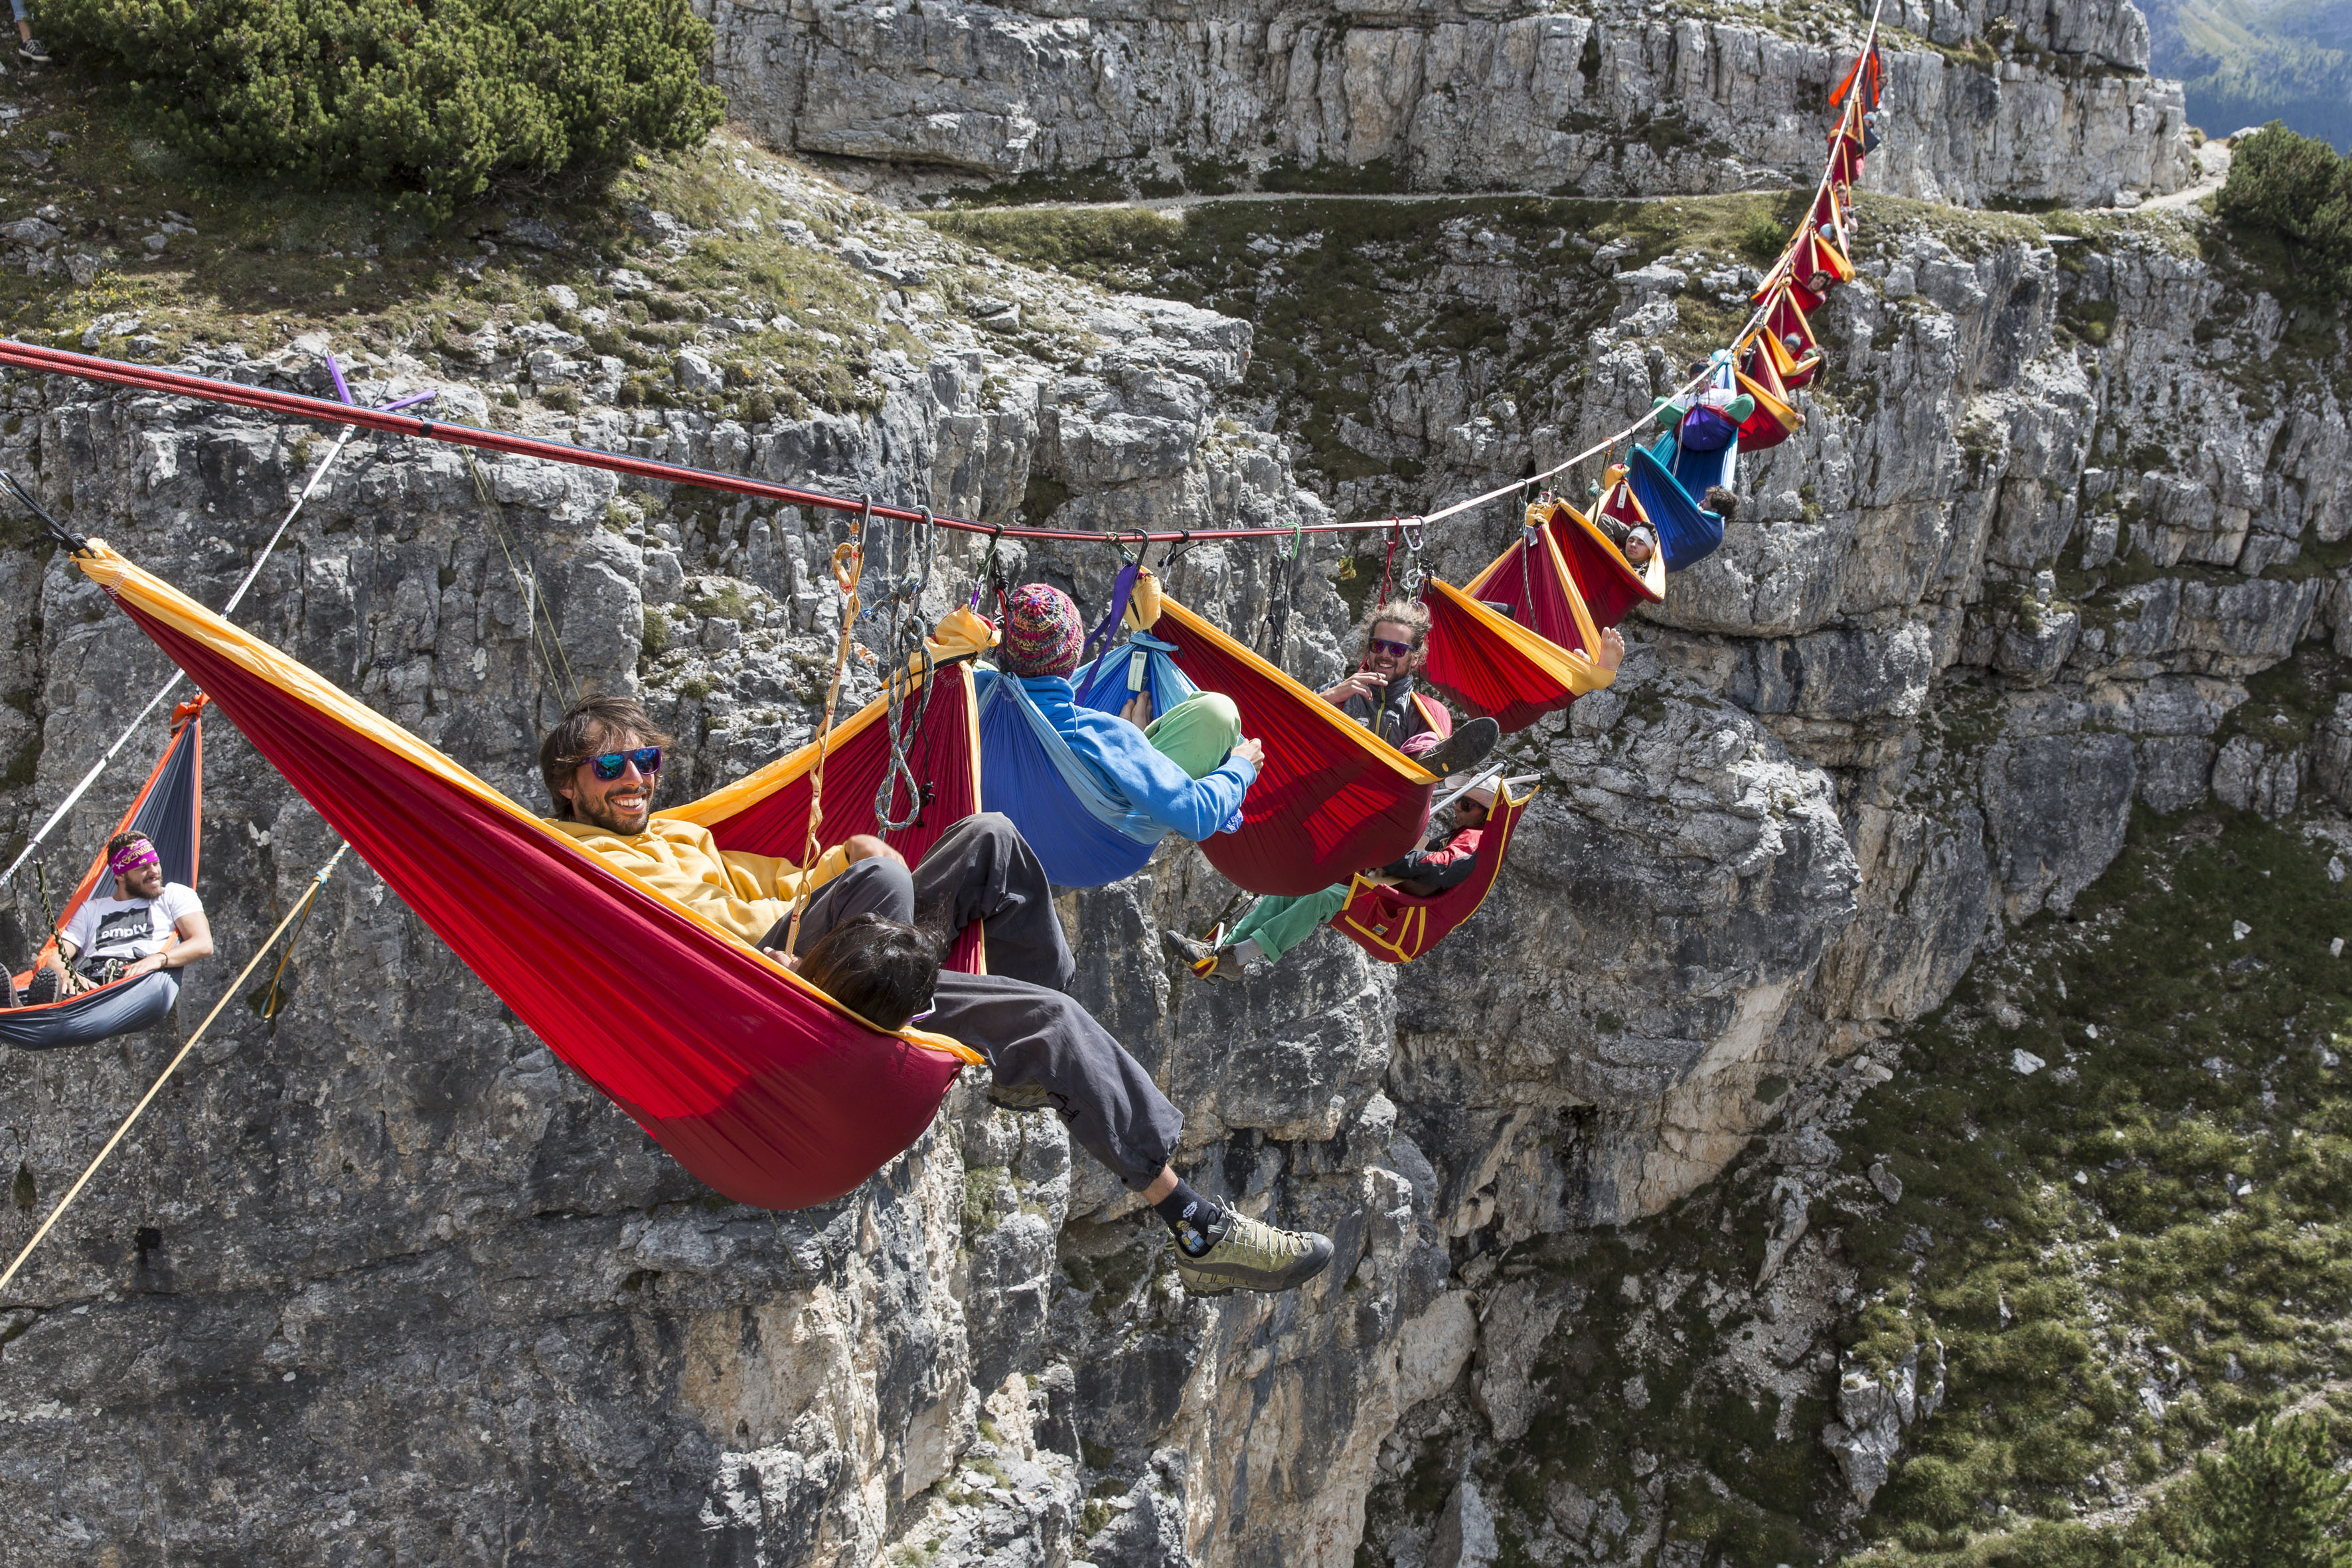 Chillseekers: Highliners set up hammocks to relax hundreds ...